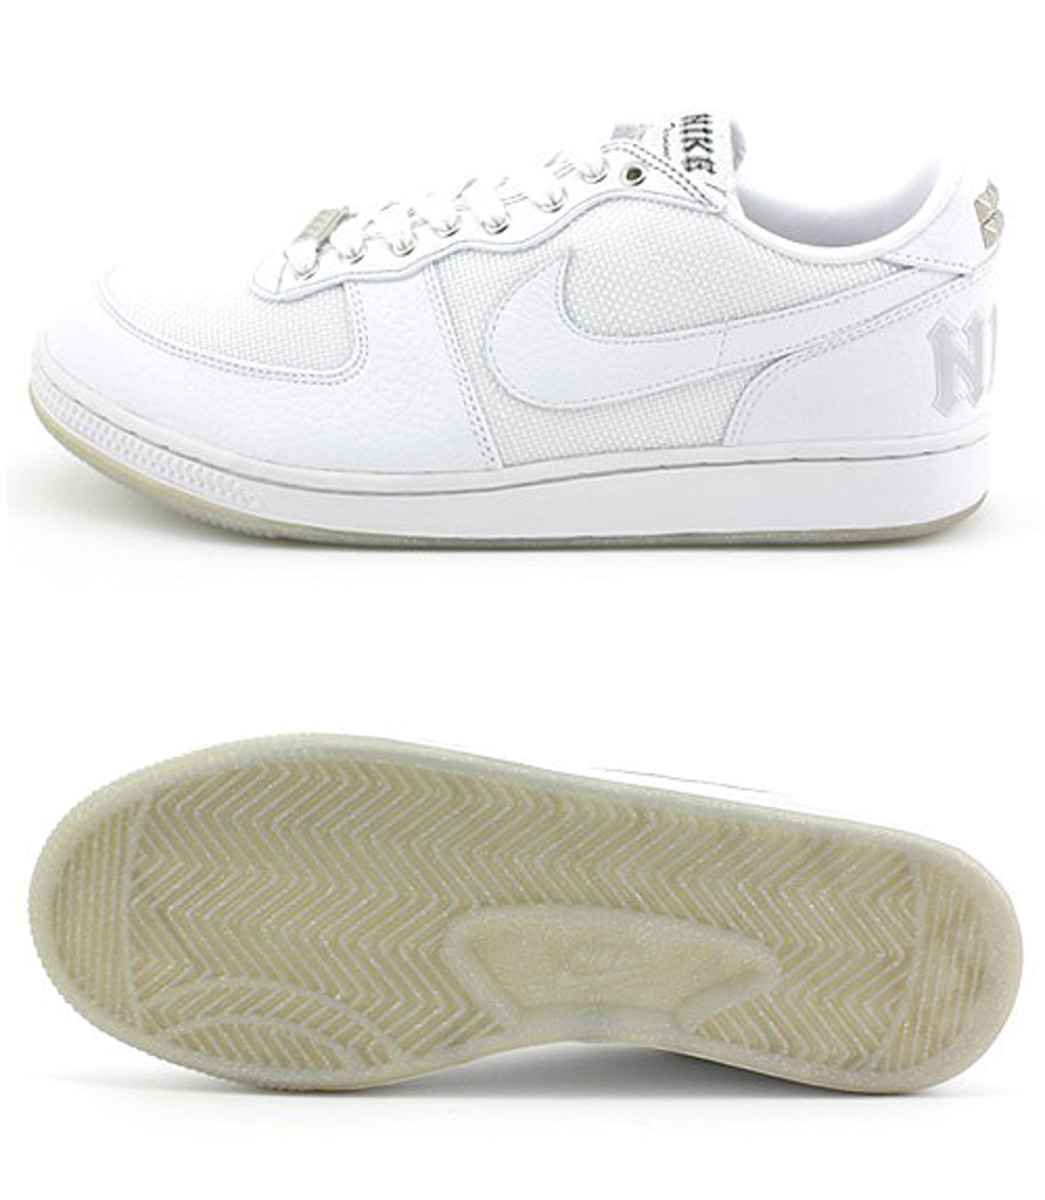 Nike WMNS Terminator Low - Rock N' Roll White - 02